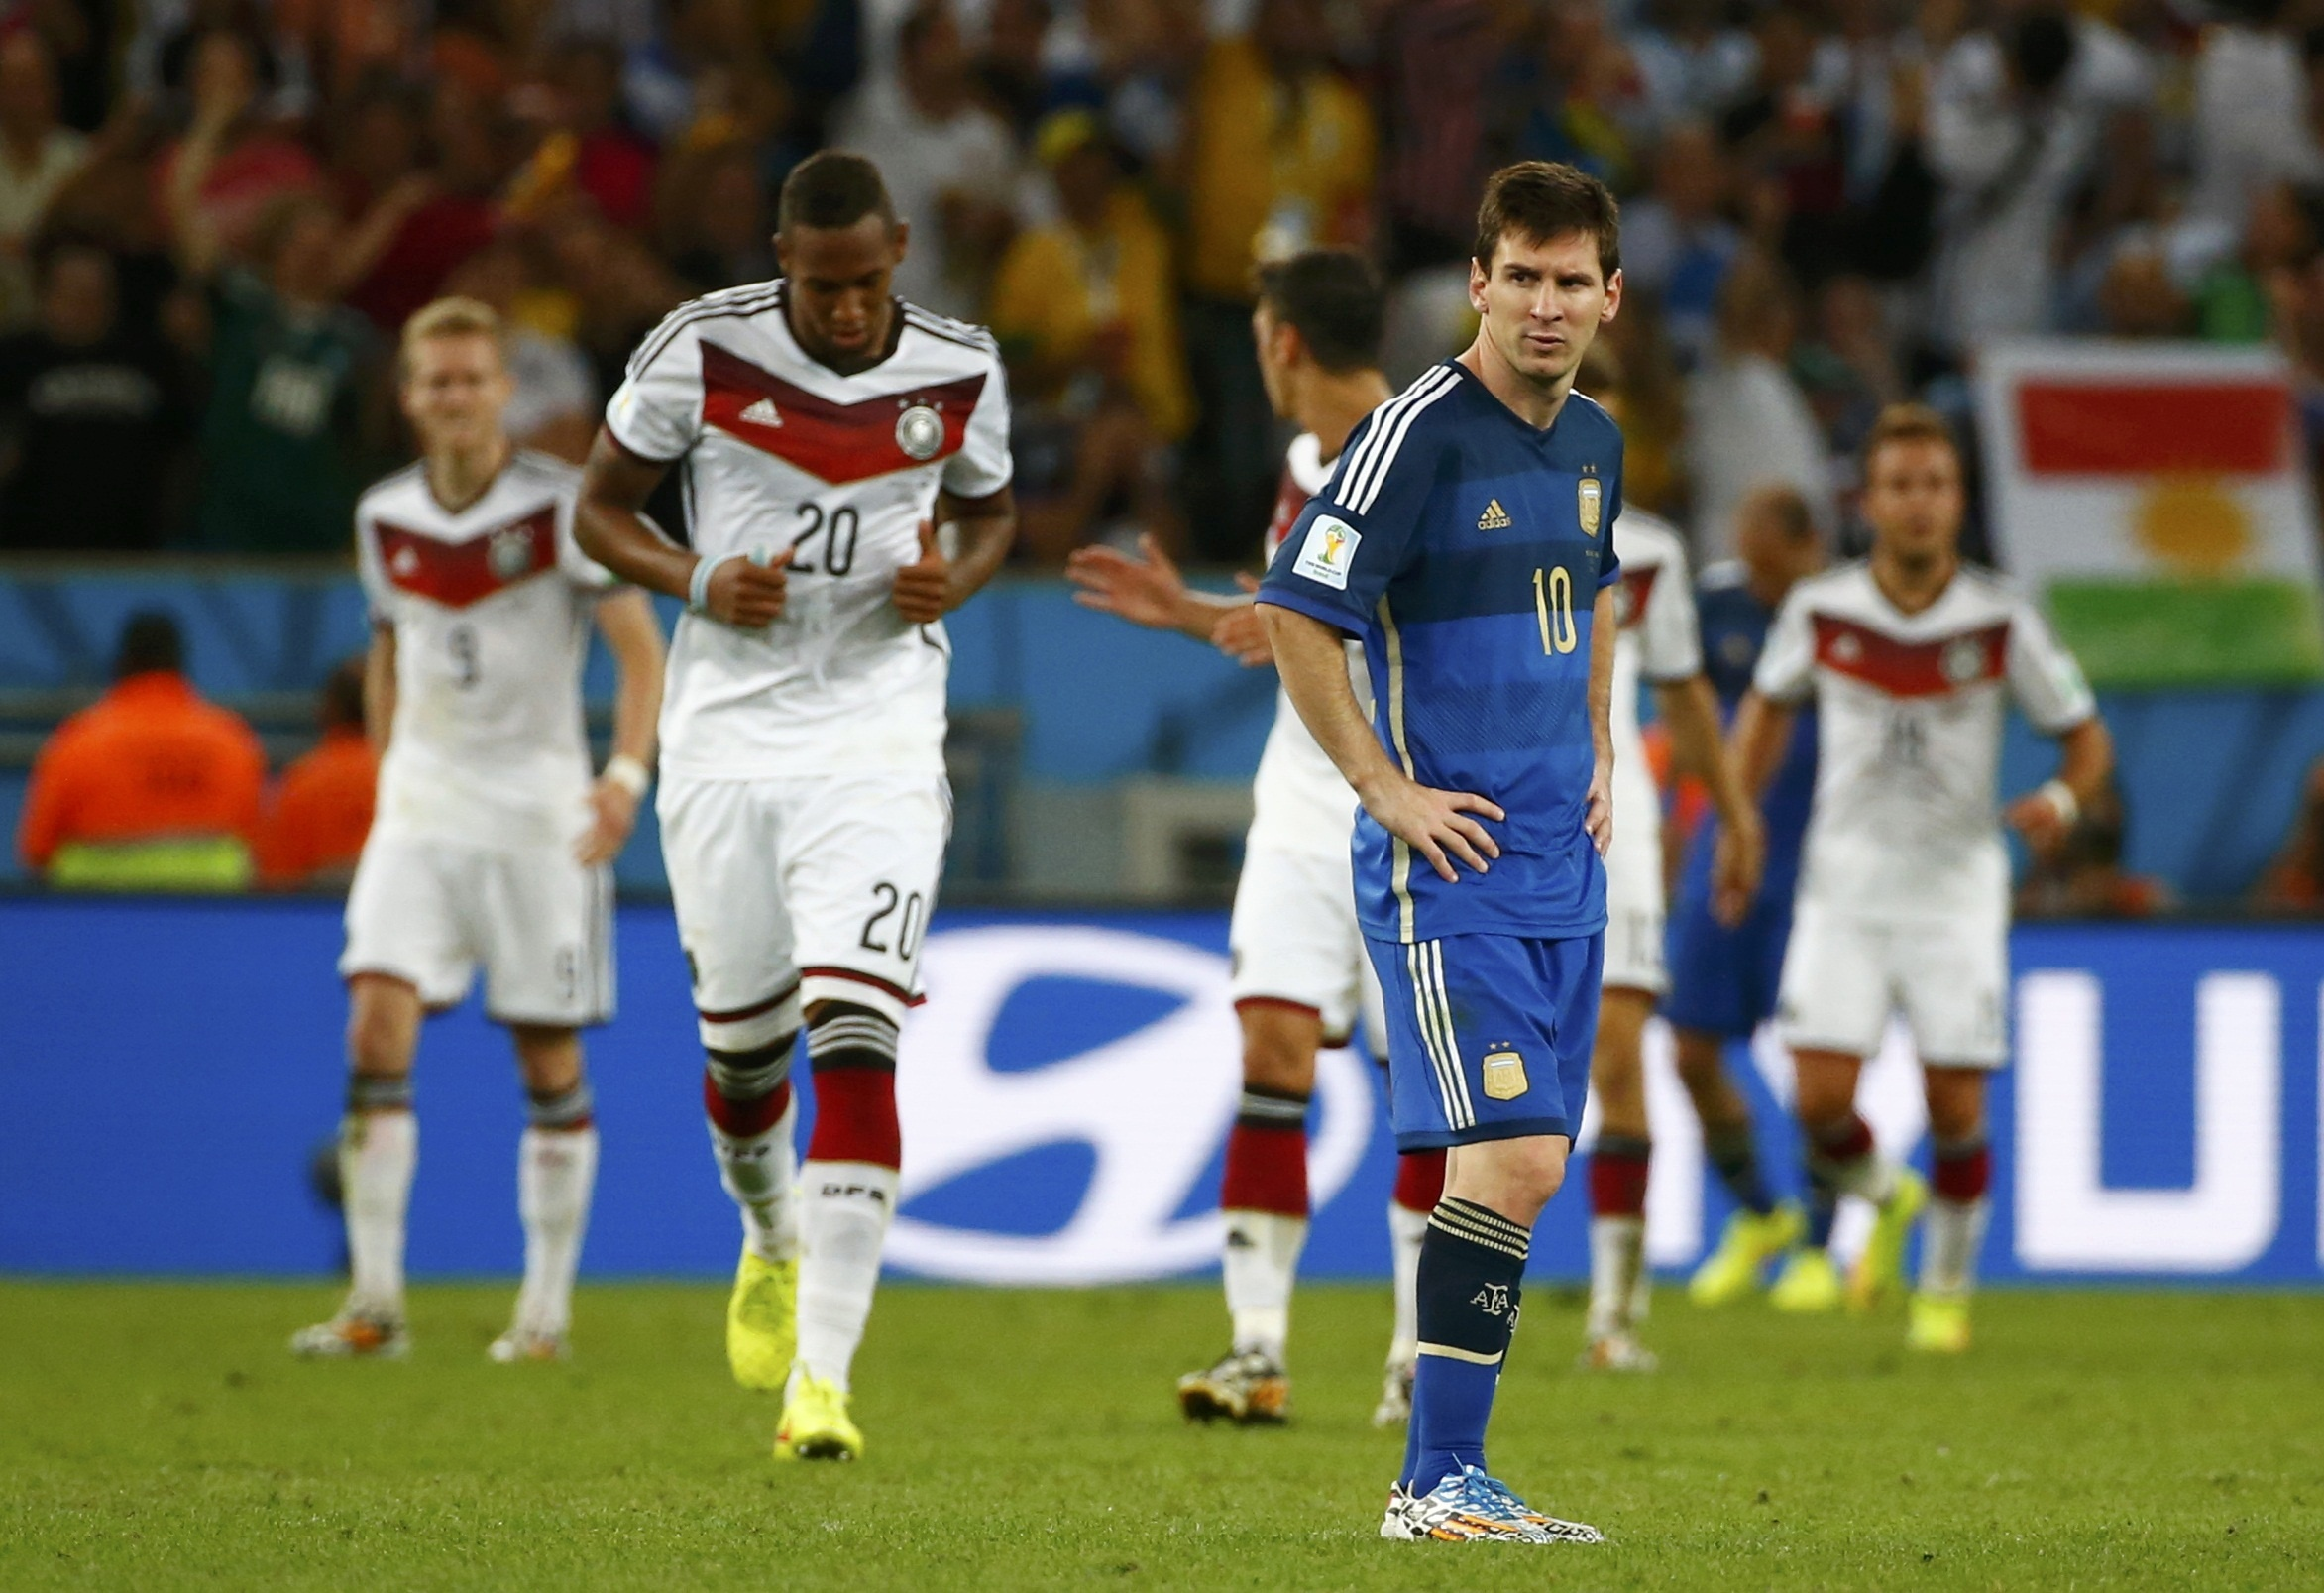 Argentina's Lionel Messi reacts as Germany players celebrate their goal during extra time in the 2014 World Cup final. Reuters